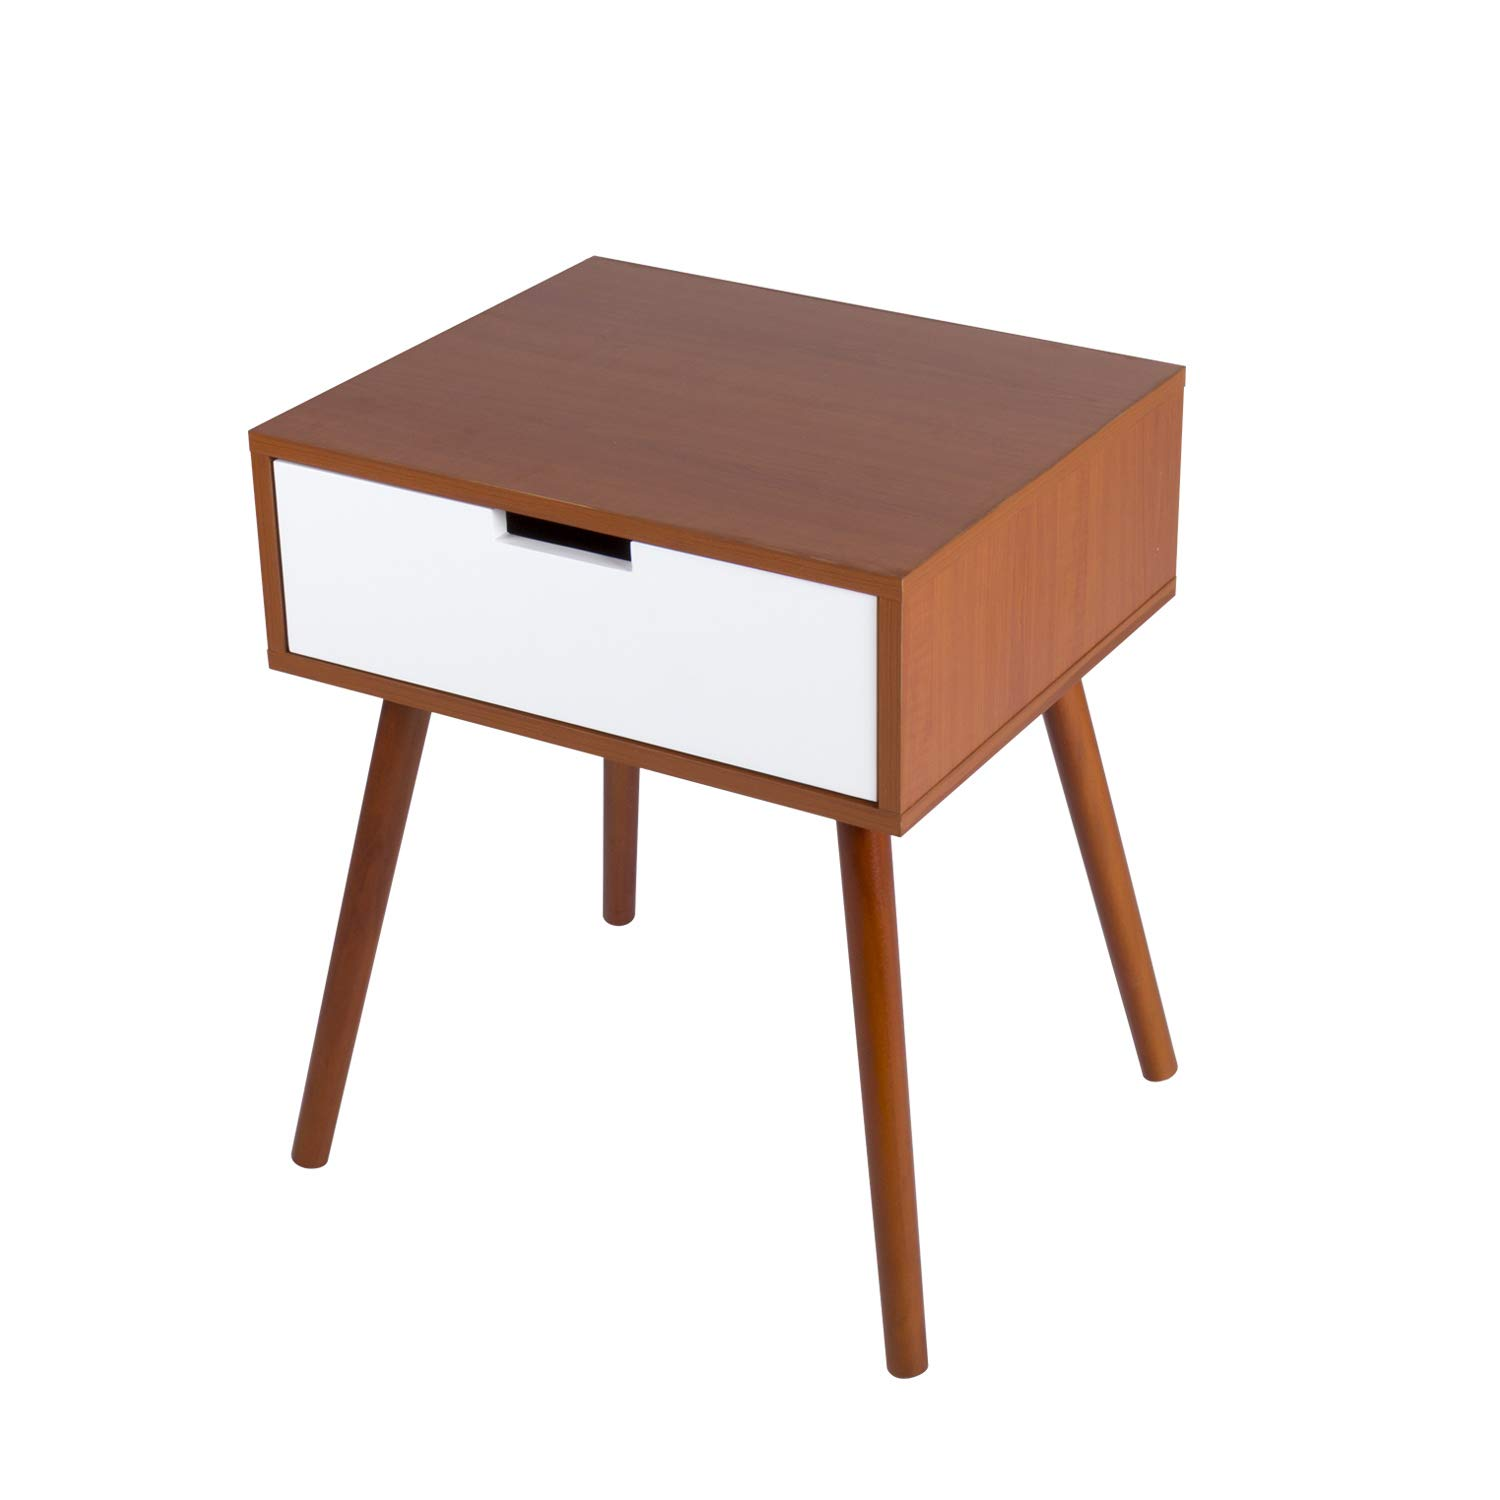 kinbor side end table nightstand bedroom living room mid century with drawer cabinet storage accent wood furniture kitchen dining white square coffee glass top ethan allen style